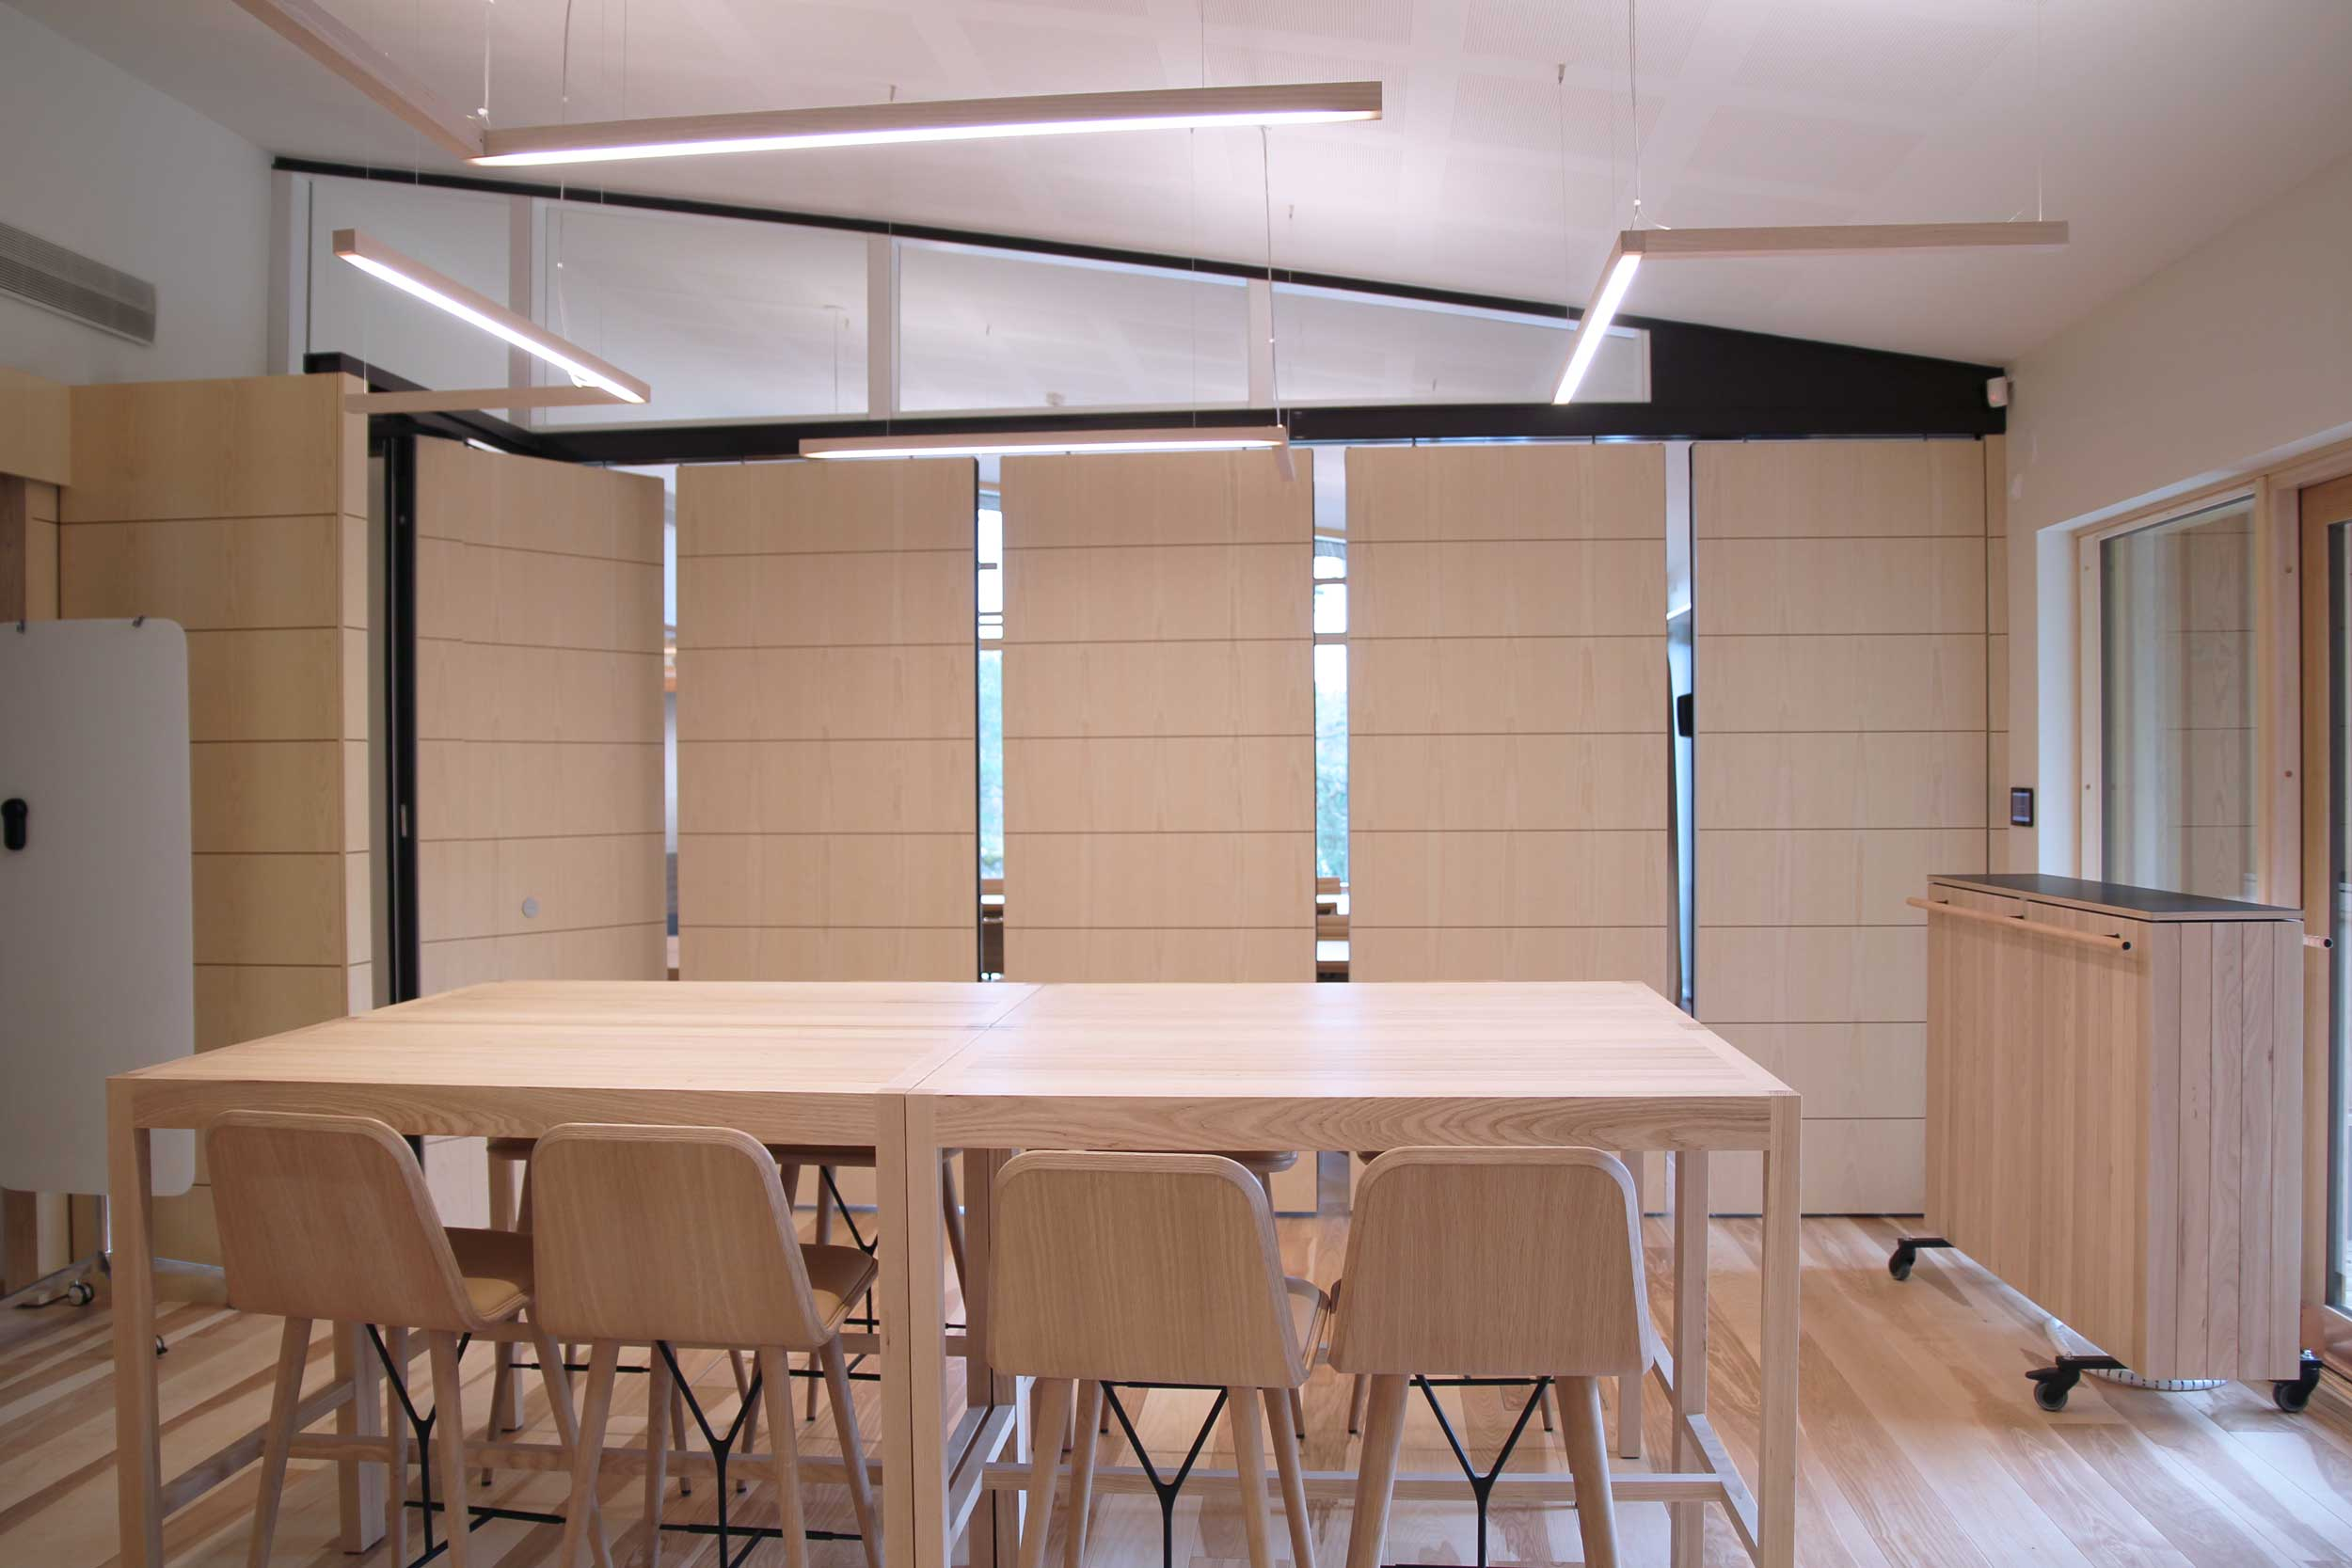 Scanmikael soundproof _movable and folding panel wall_Neste head office, Porvoo